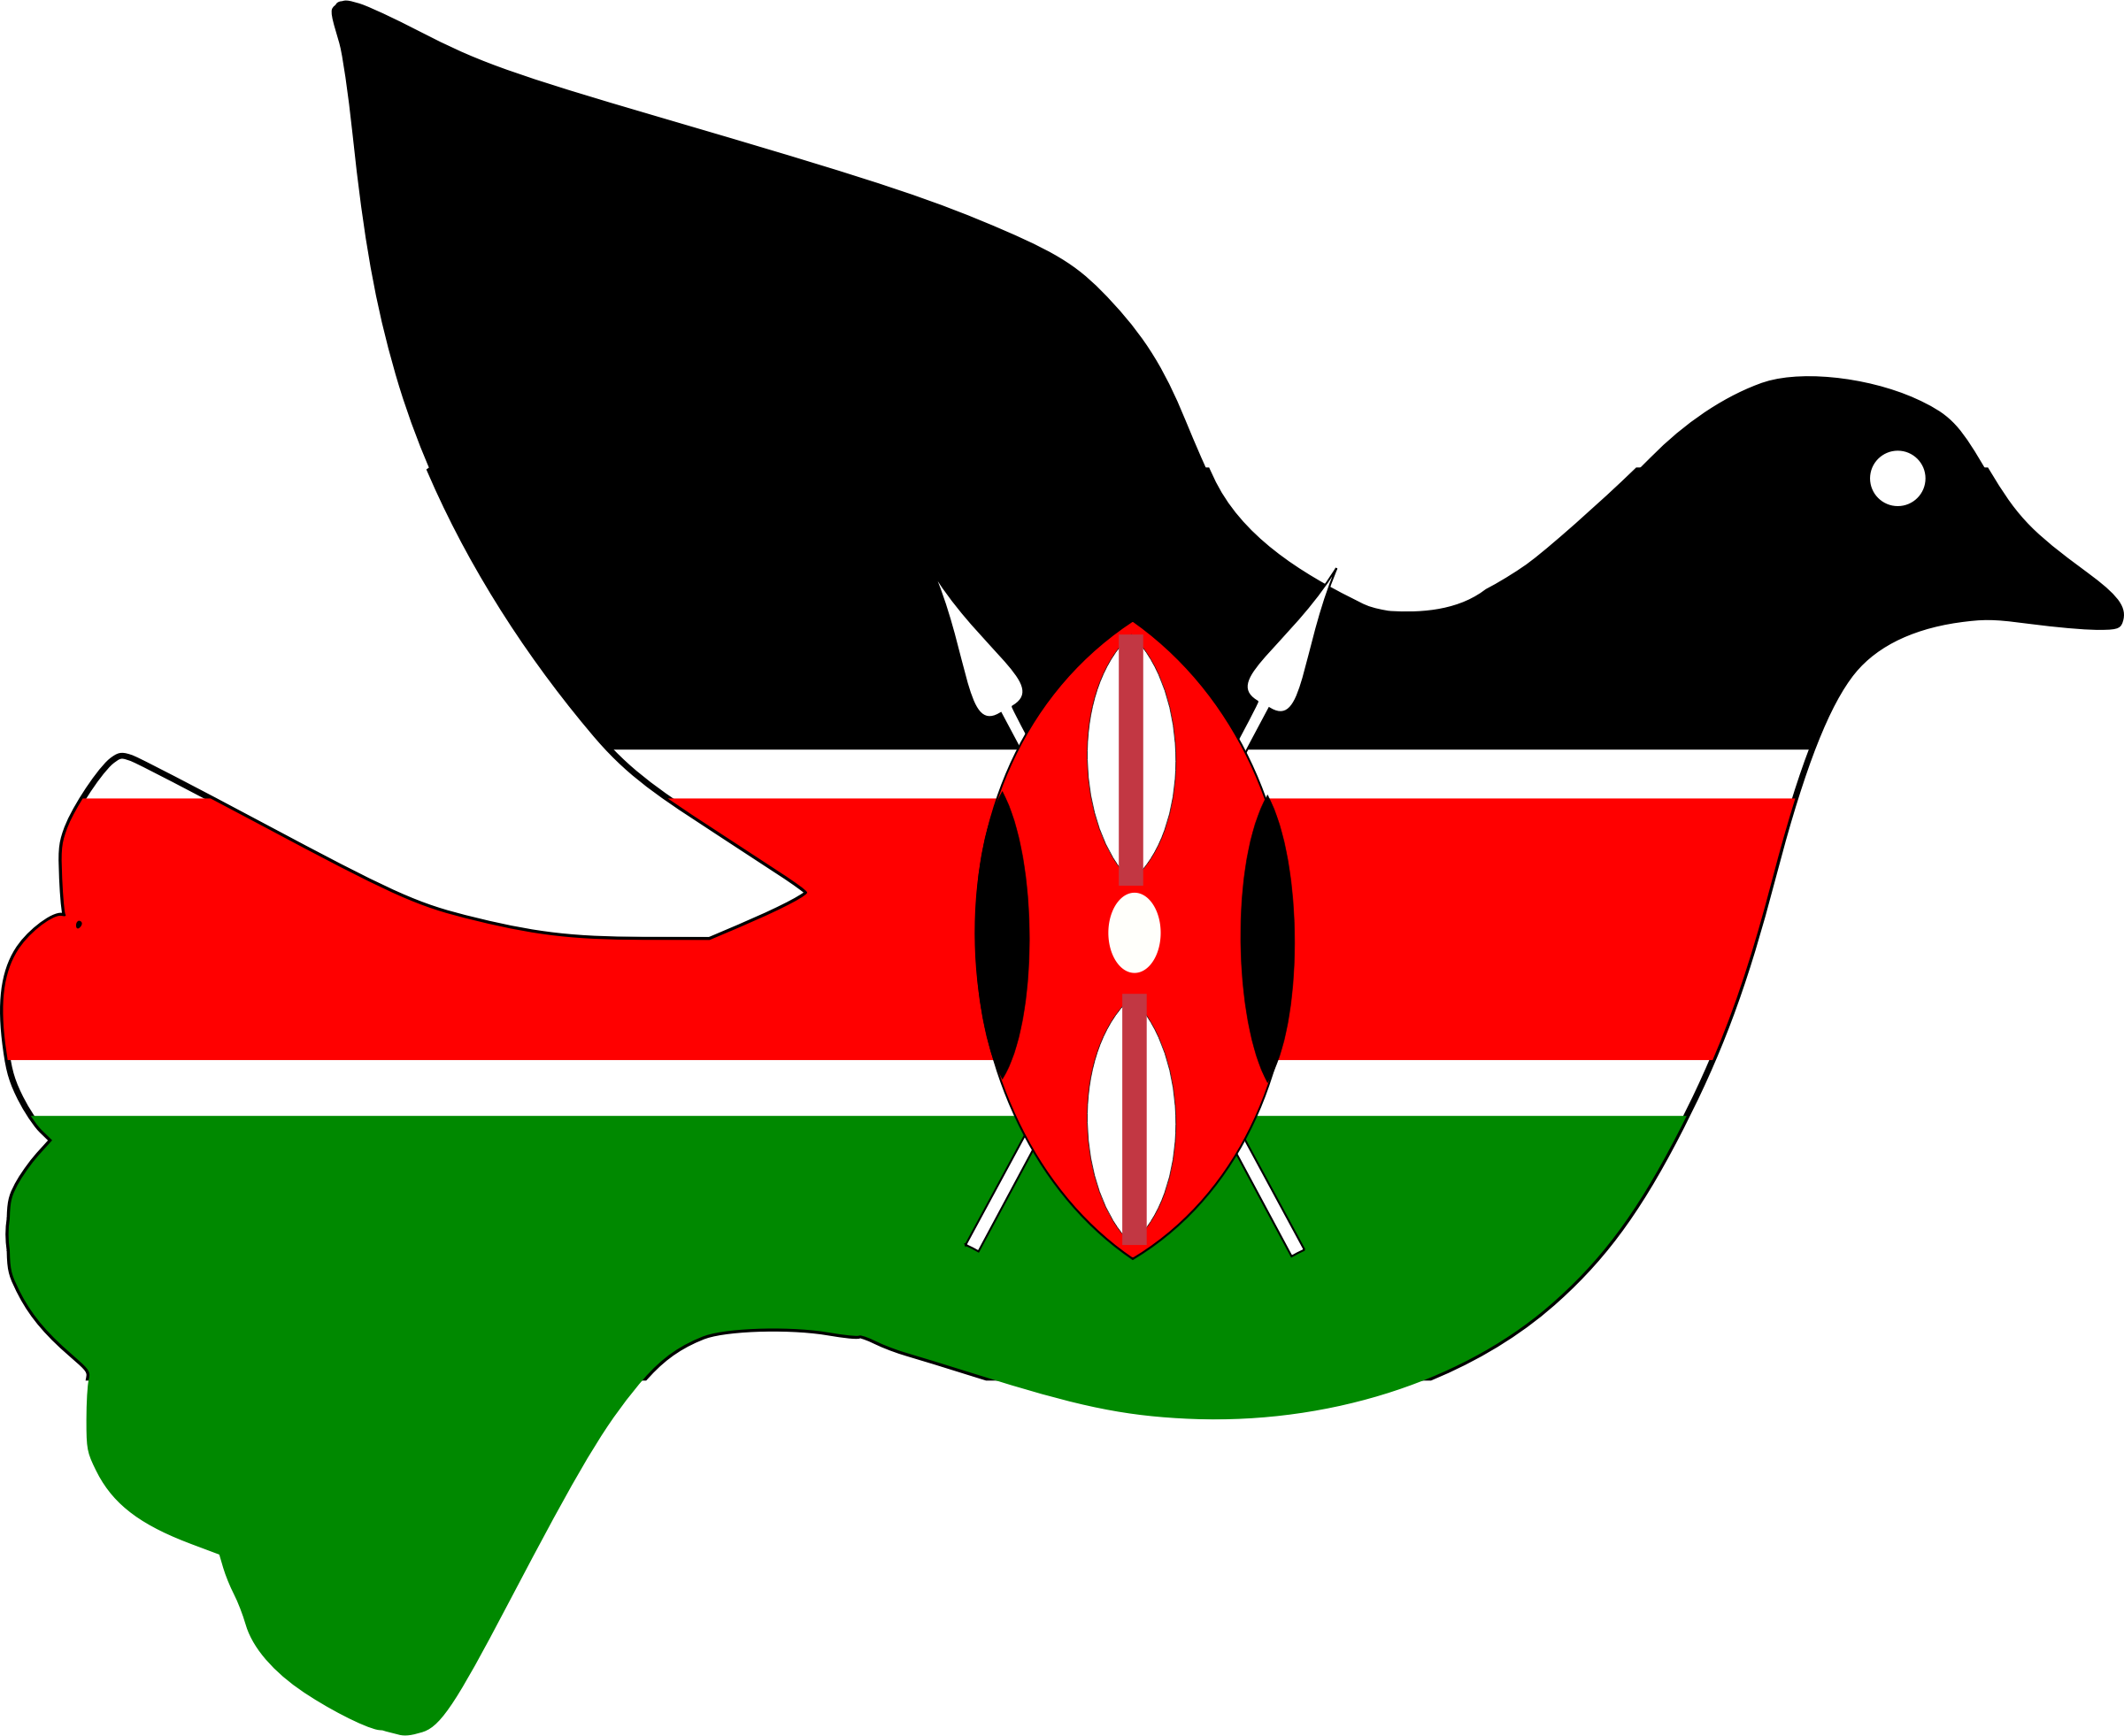 clipart kenya peace dove